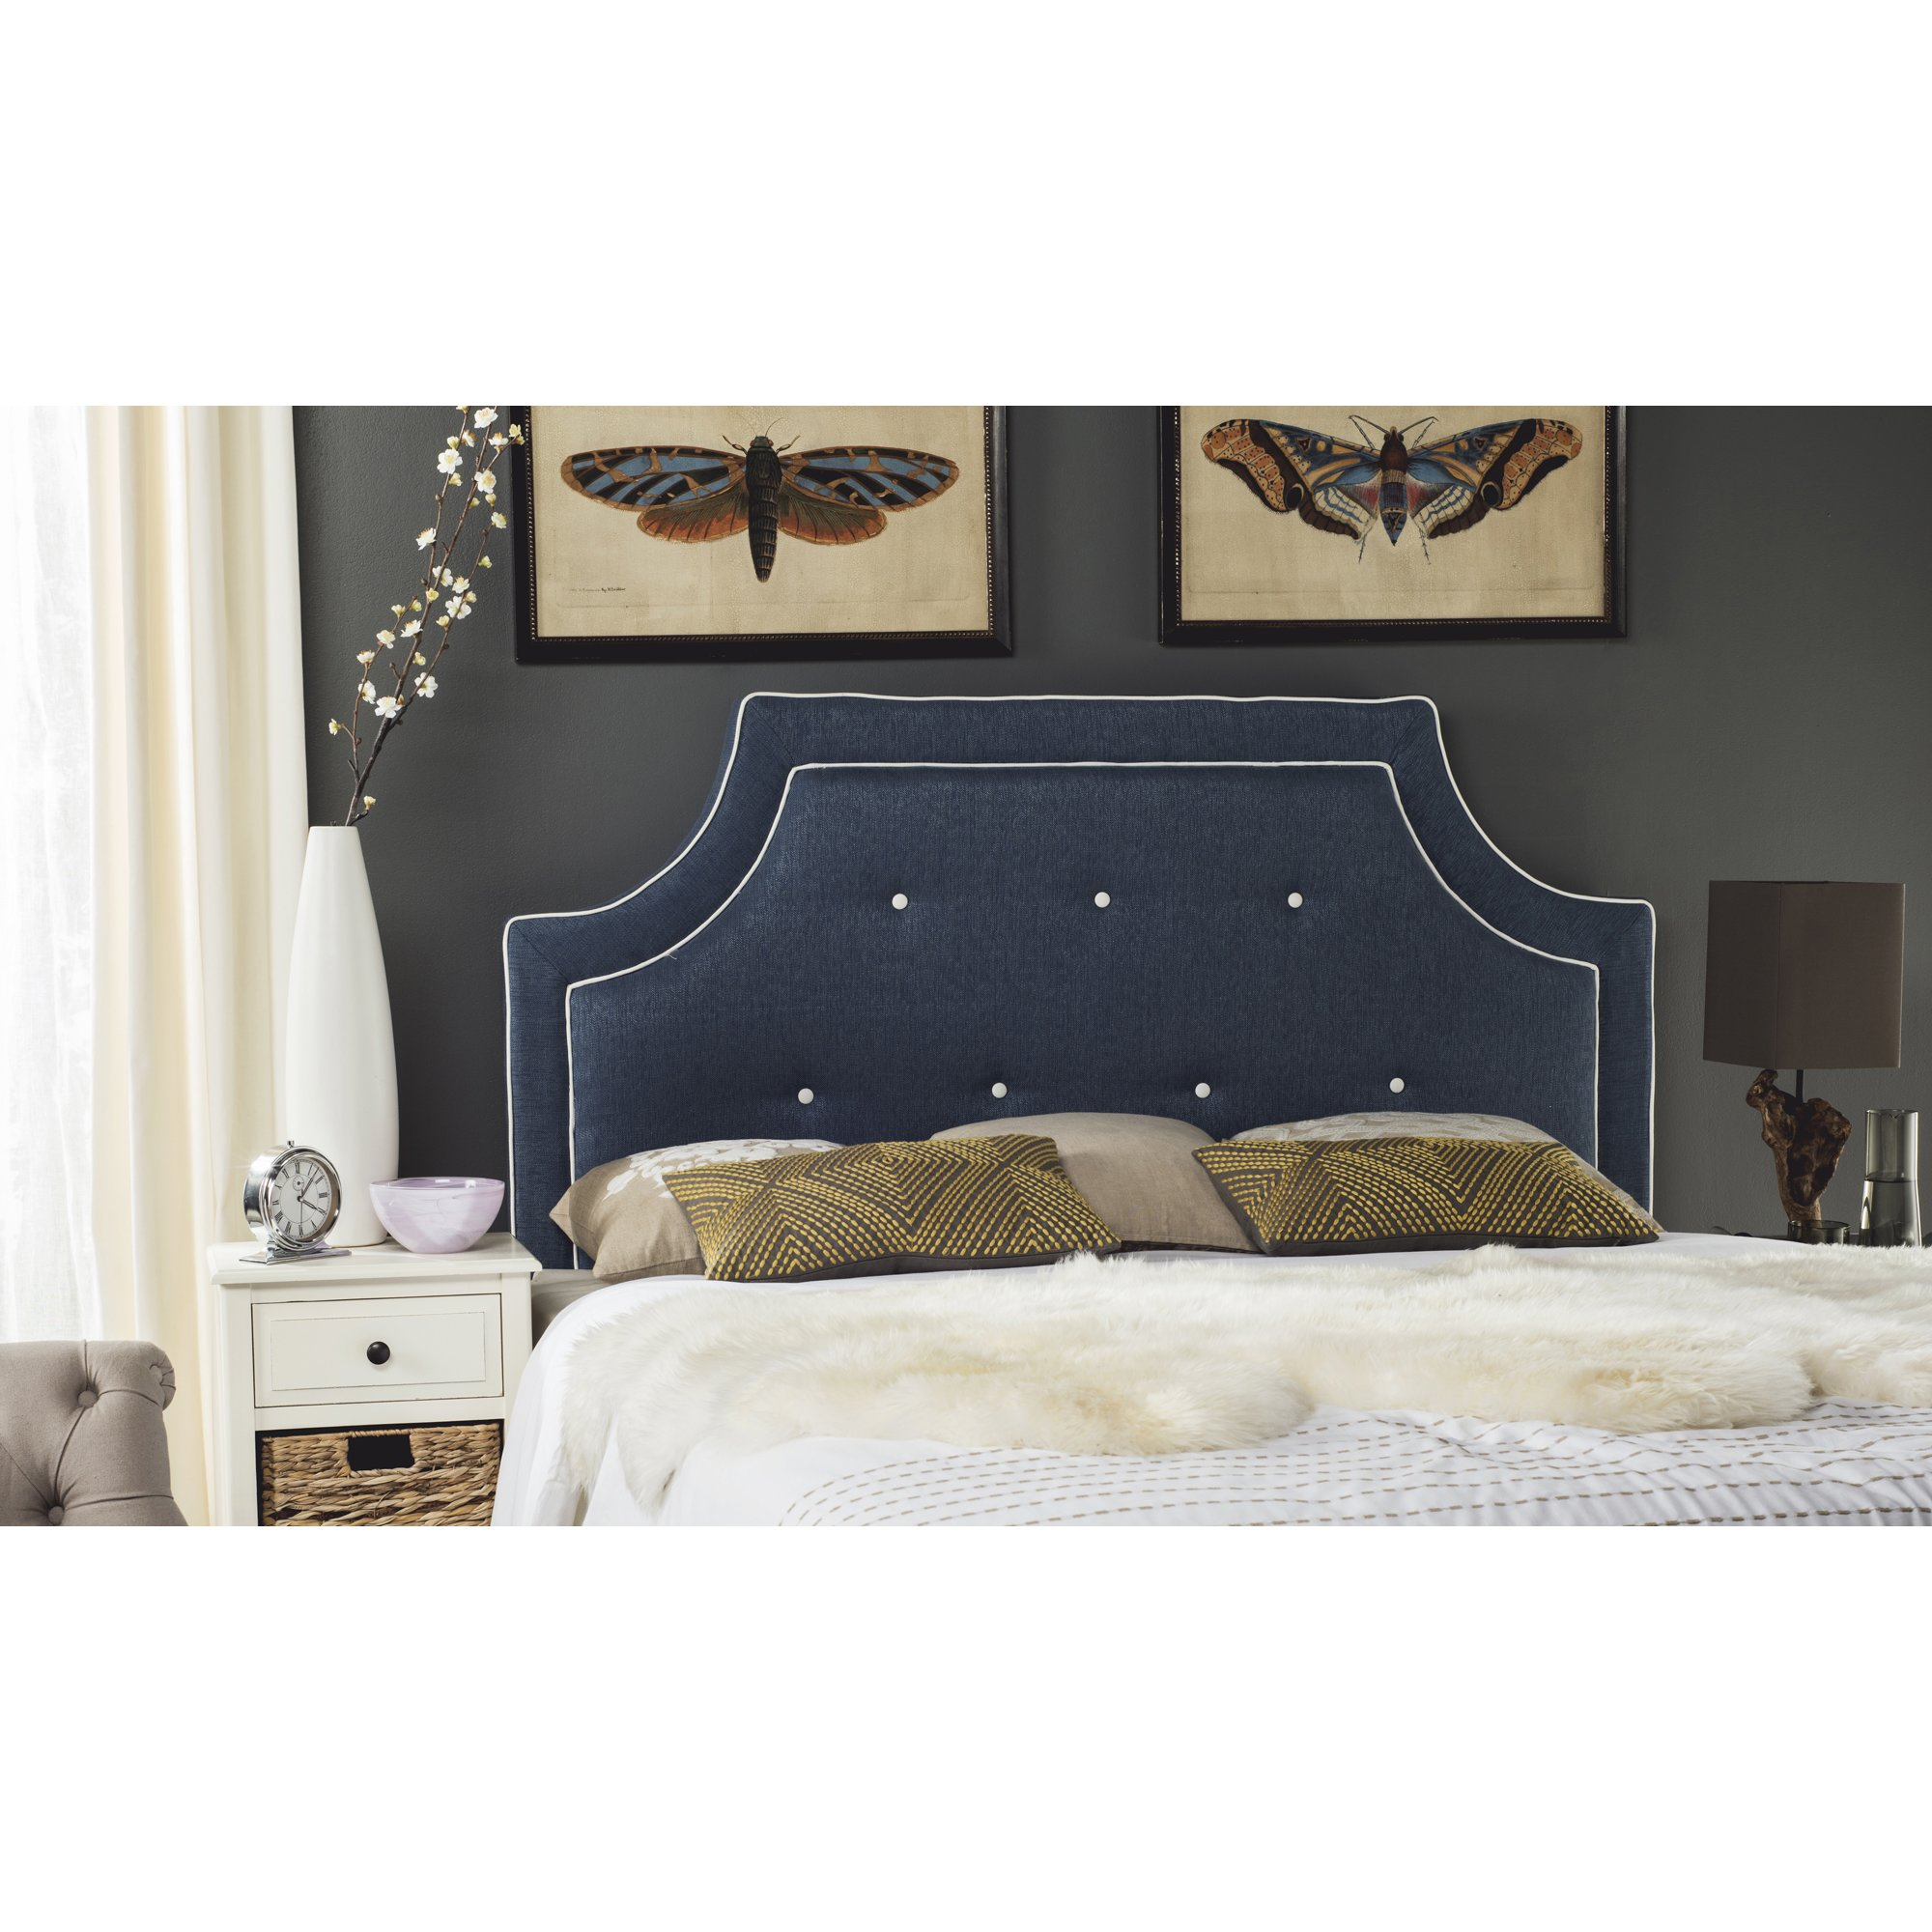 Ottoville+Upholstered+Panel+Headboard.jpg